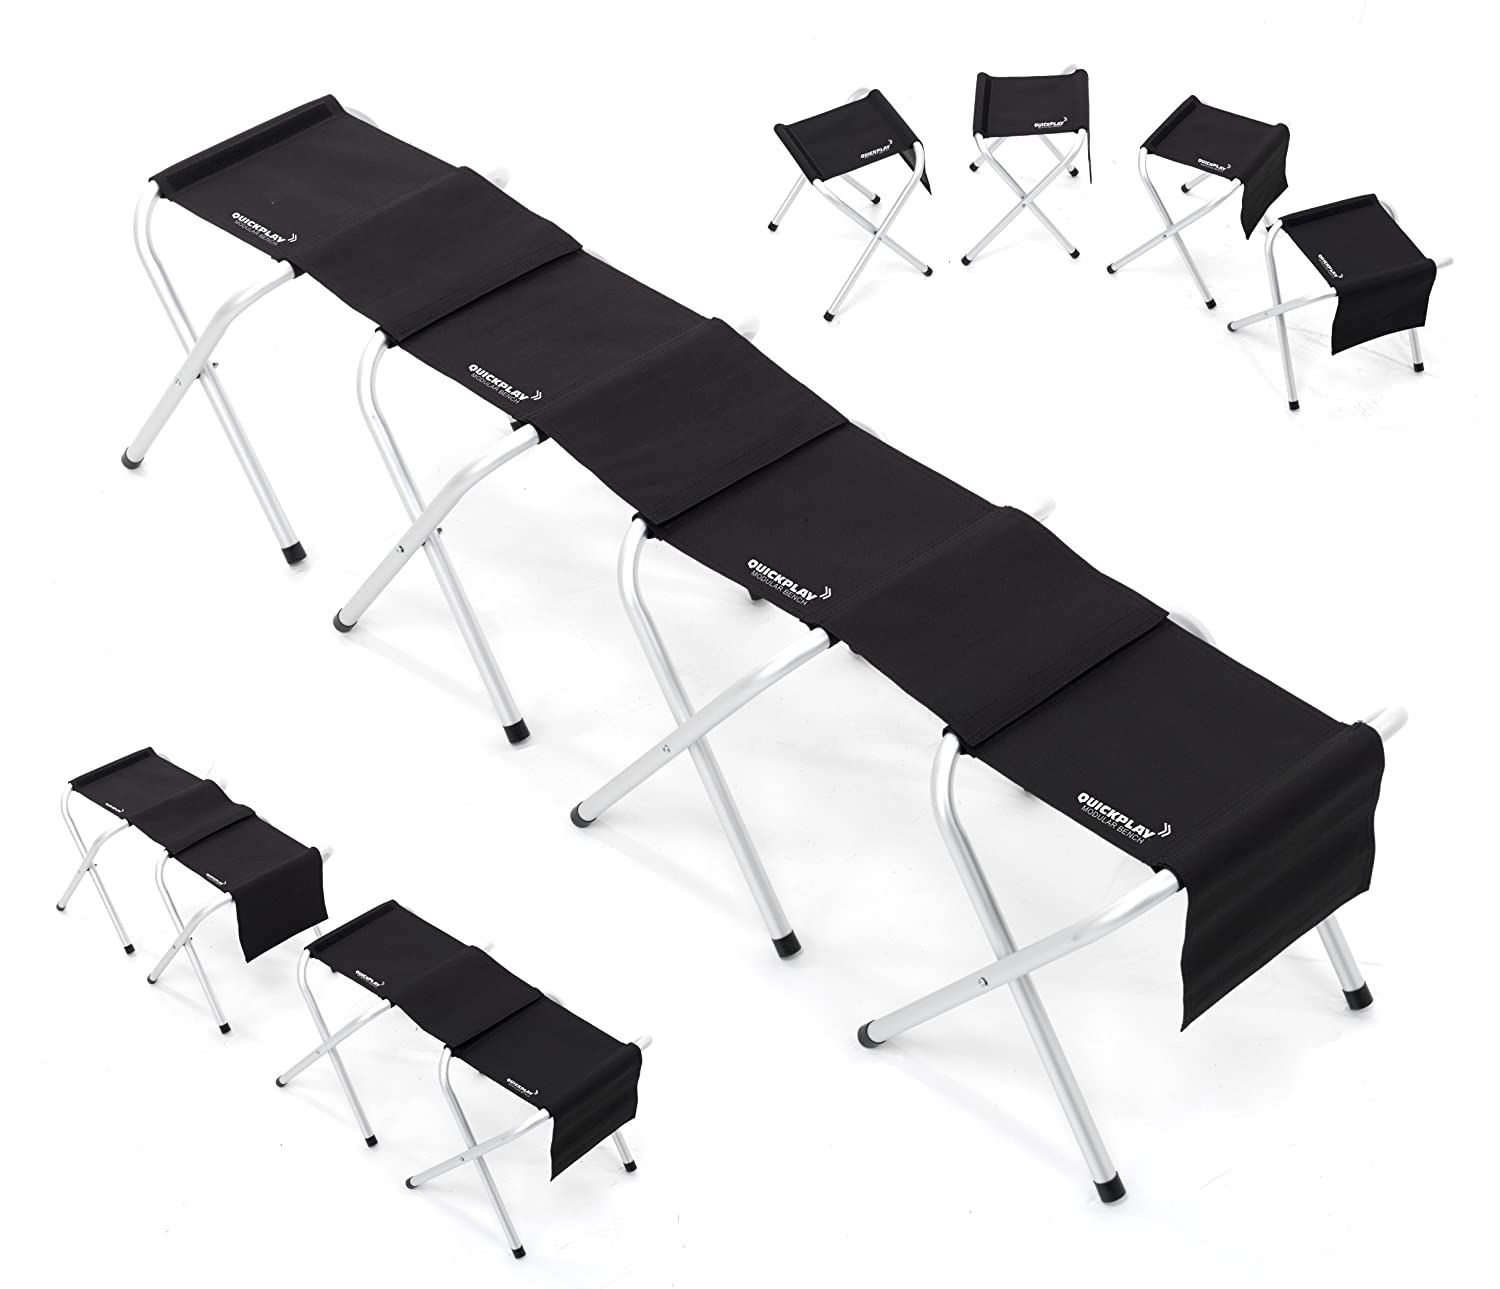 Folding Team Bench Part - 48: QUICKPLAY Portable Lightweight Sports Team Bench - With Modular Design